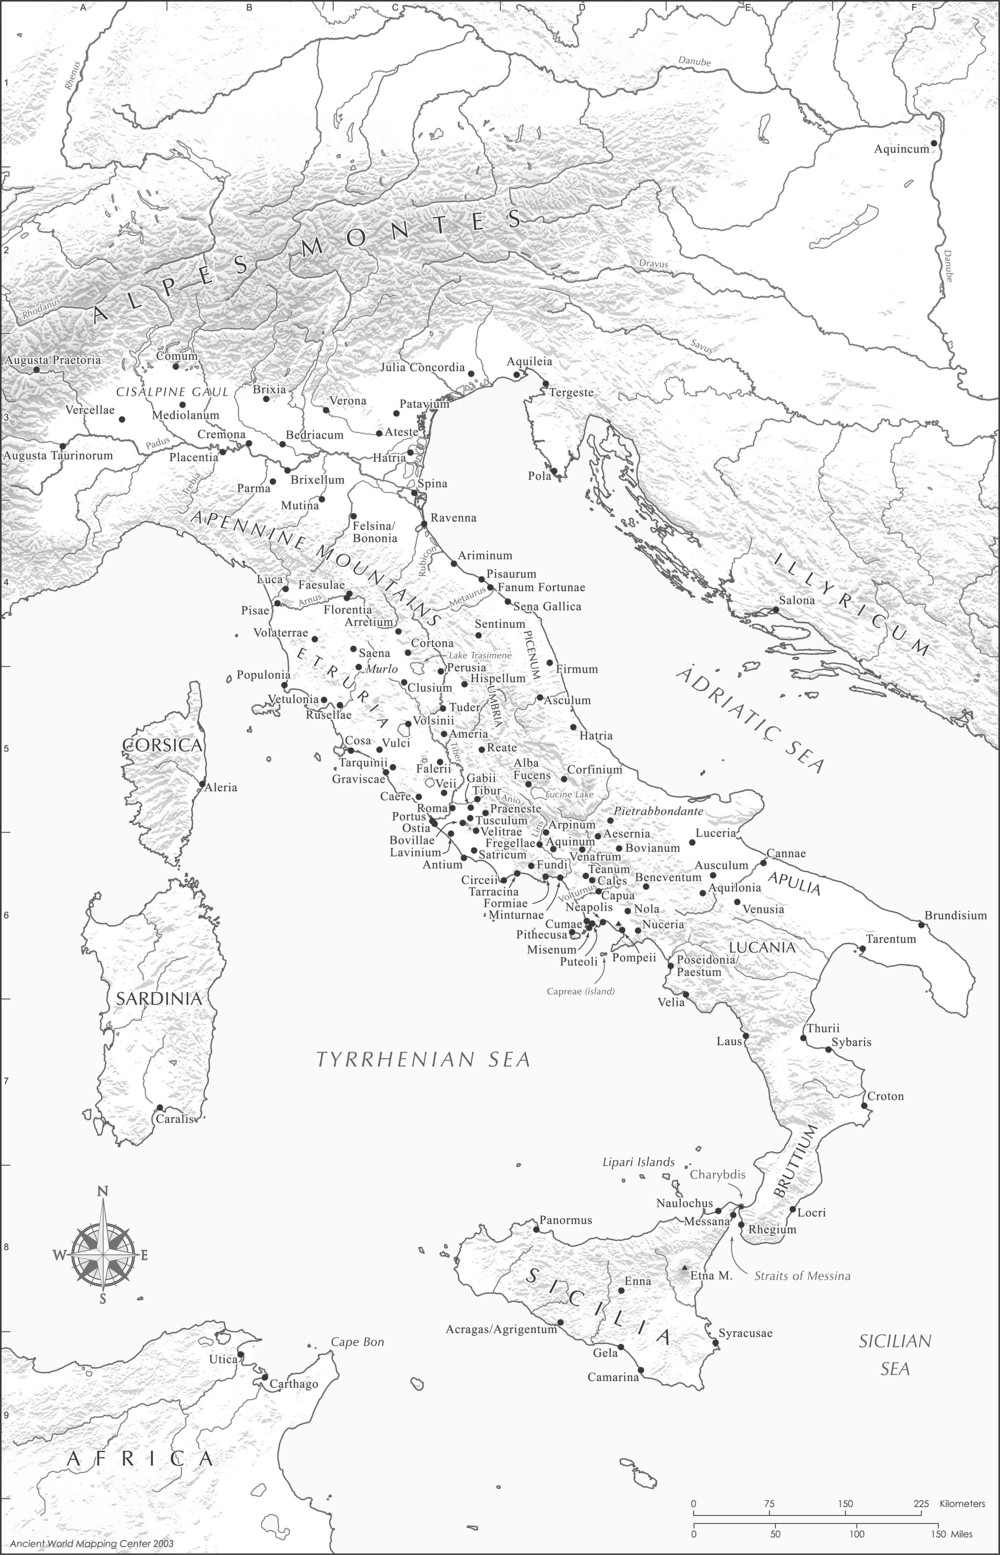 Map of the Italian Peninsula and Central Mediterranean